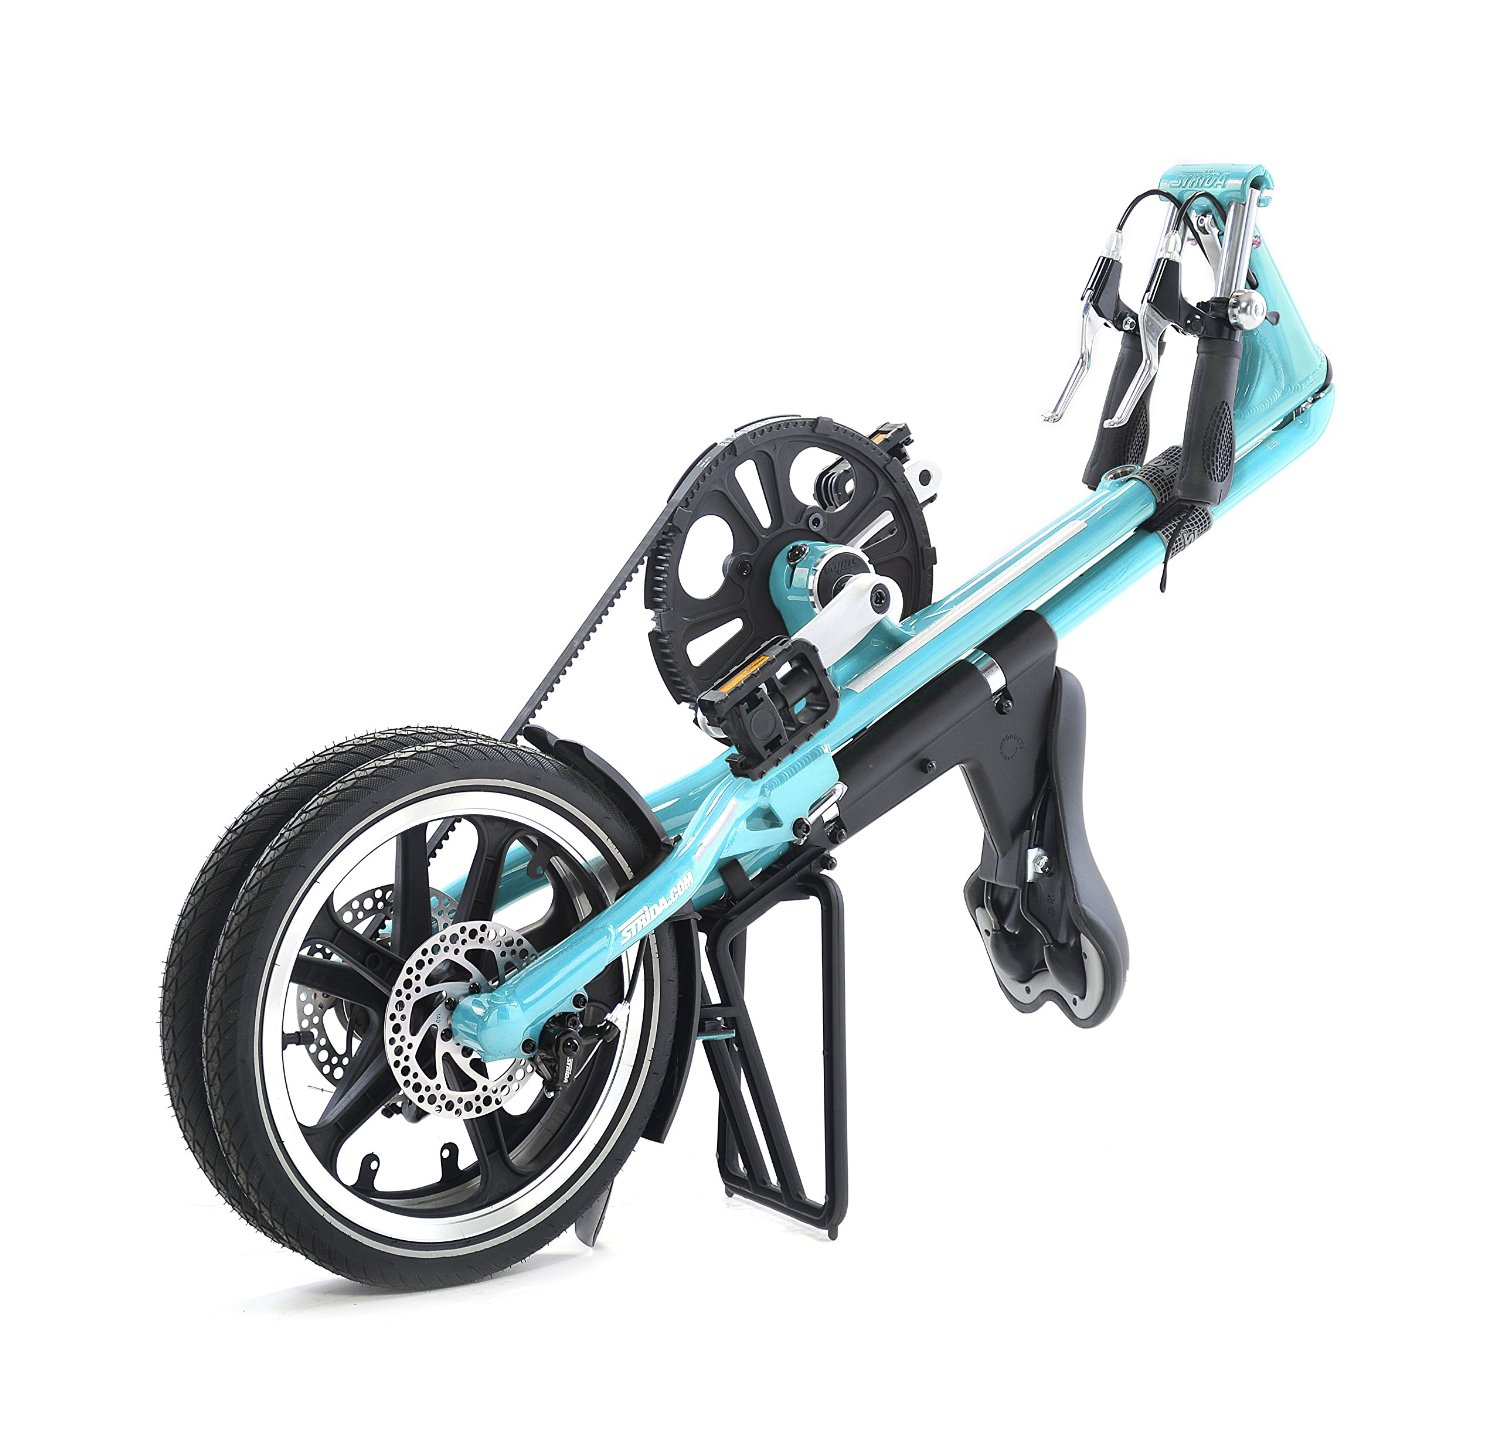 STRiDA LT Folding Bike Review